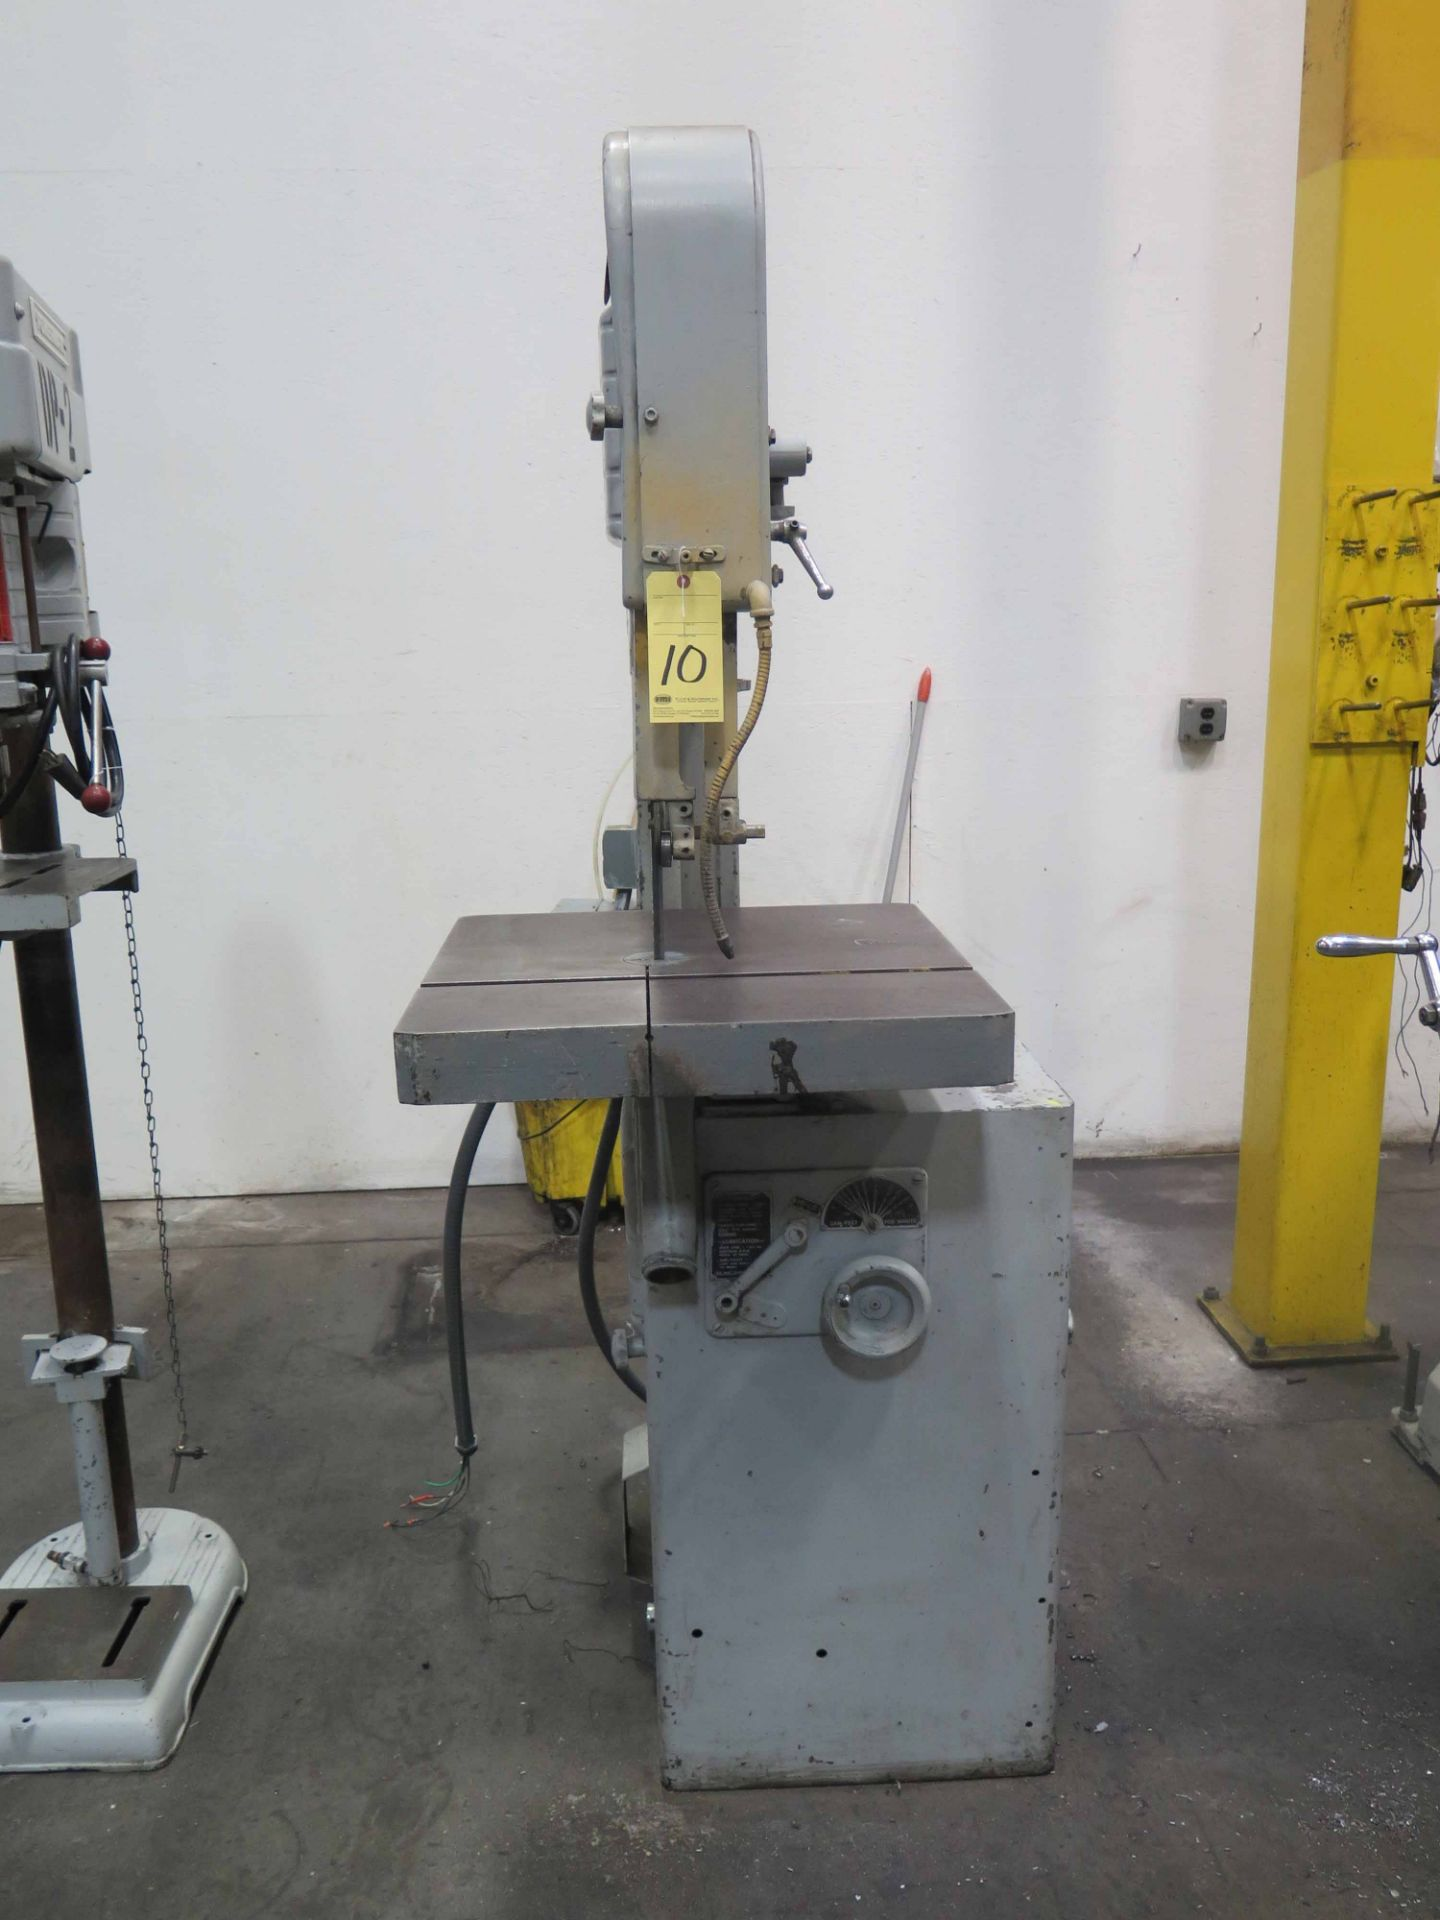 Lot 10 - METAL/WOODCUTTING VERTICAL BANDSAW, DELTA ROCKWELL, variable spd.